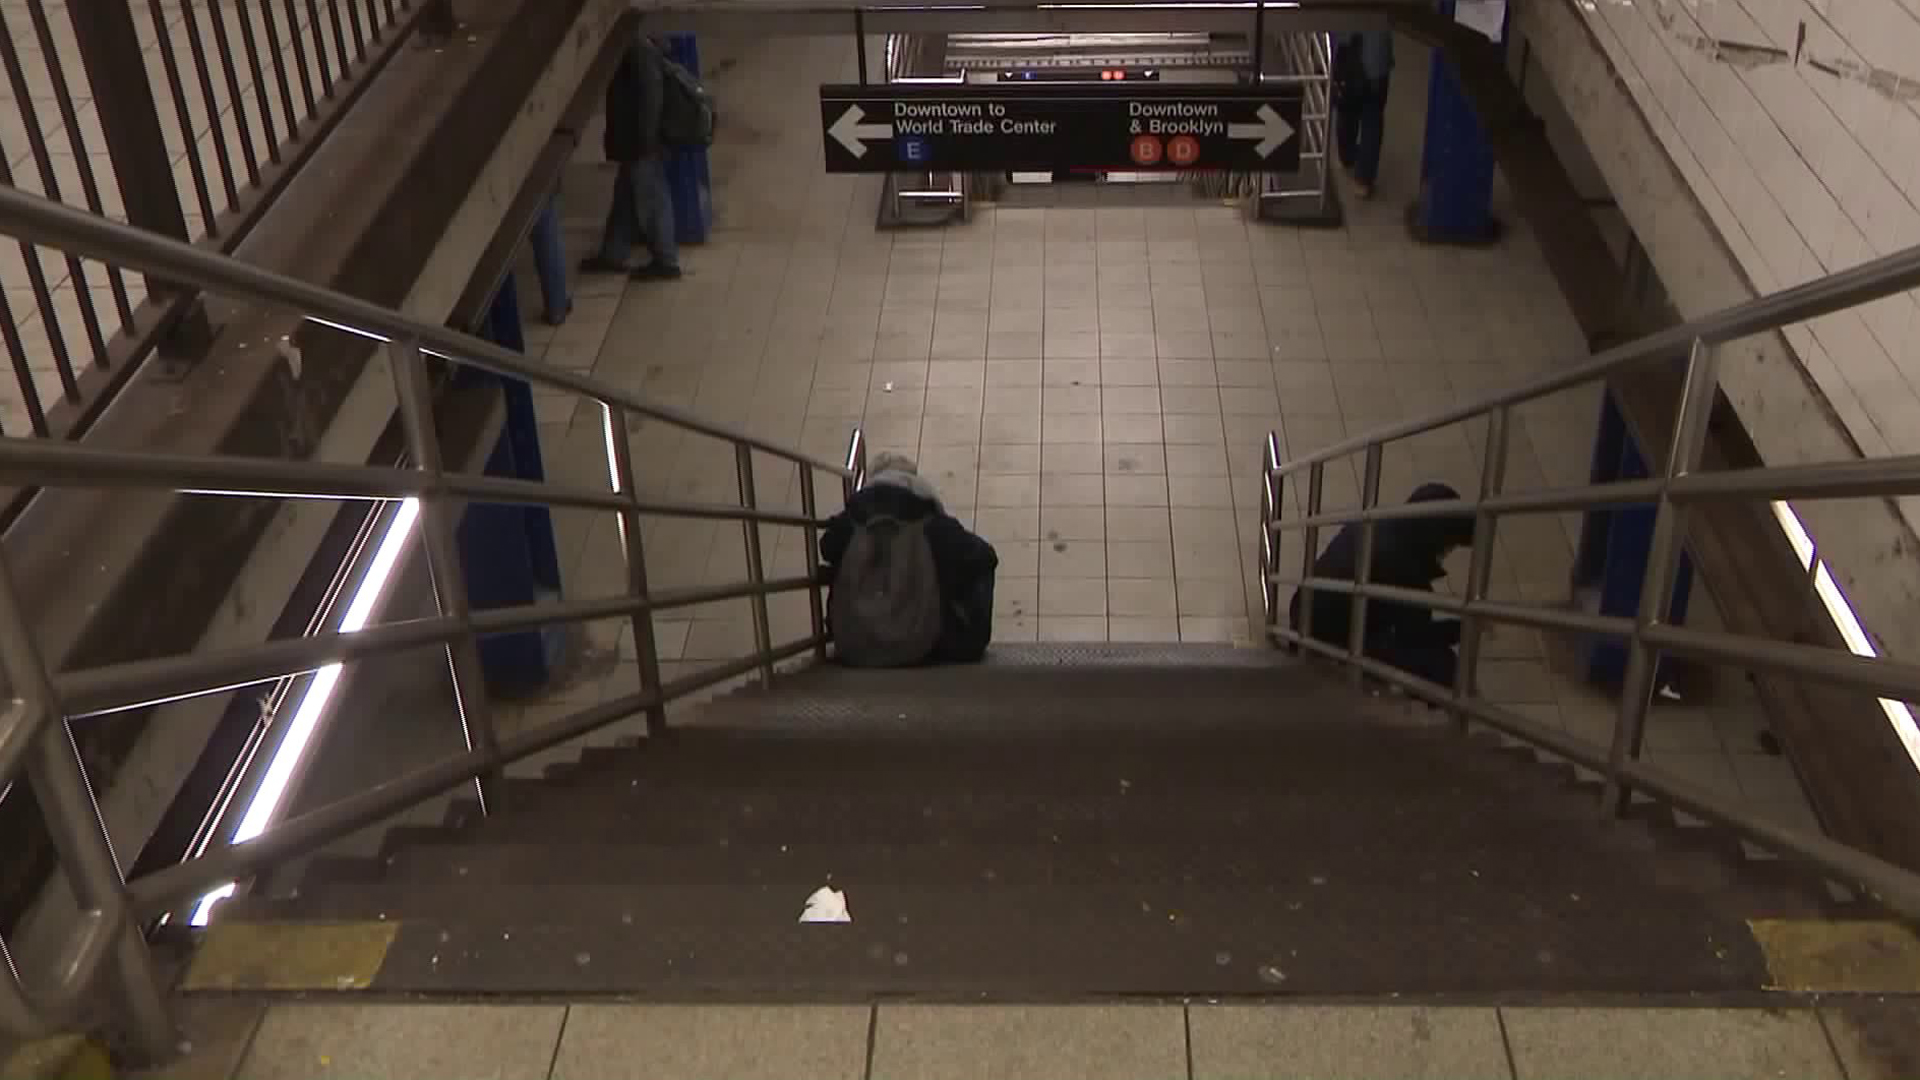 A woman died after falling down stairs in the New York City subway on Jan. 28, 2019. (Credit: WPIX)